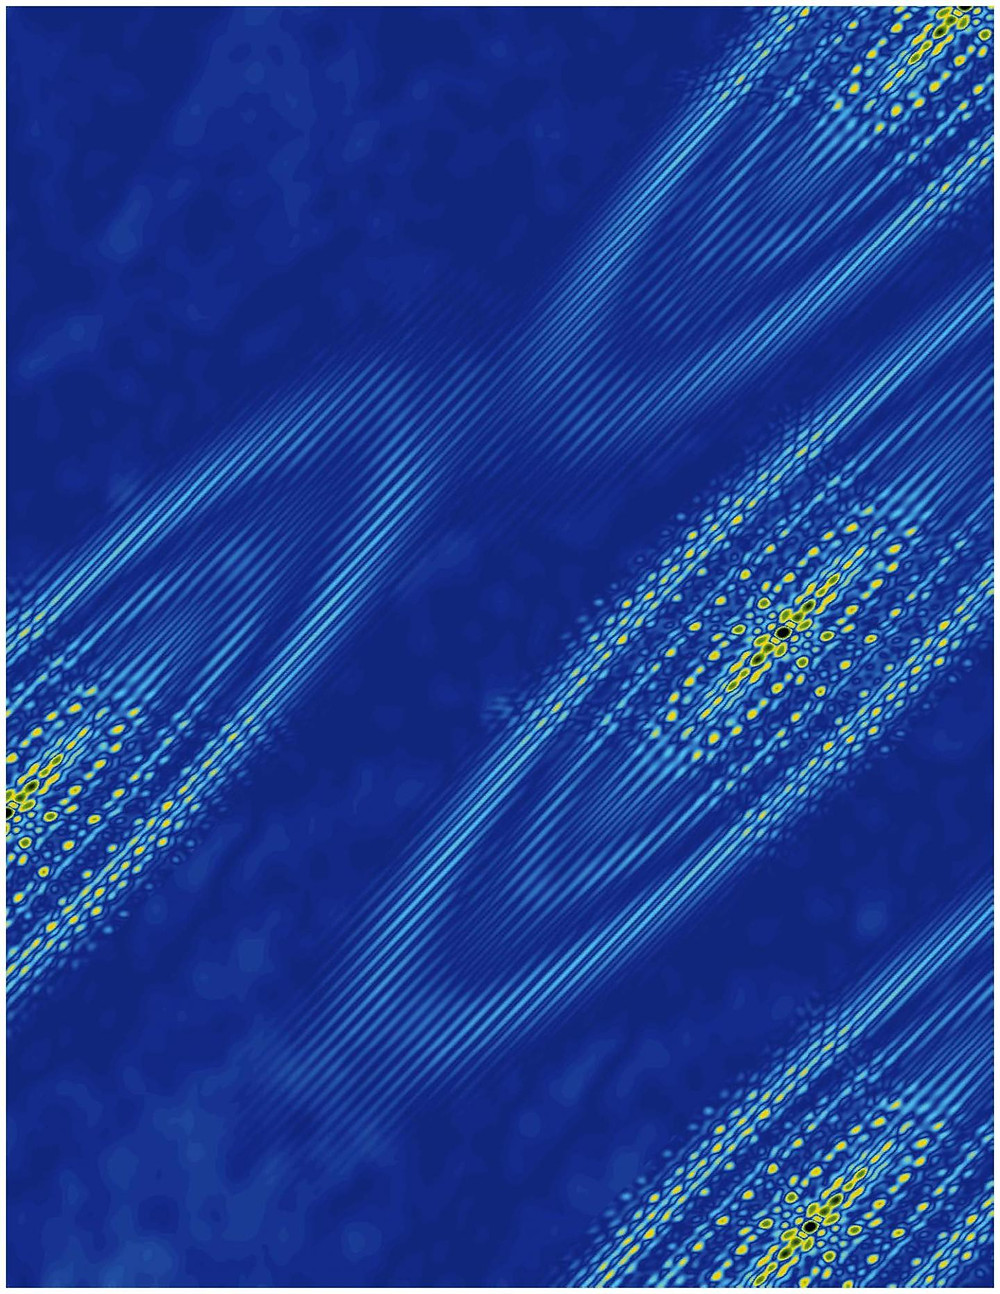 Elliptical orbits of bismuth surface electrons in a large magnetic field. The orientation and interference patterns of the electronic states reveal that the electrons prefer to occupy a single valley. Image created using a theoretical model of the data. @ Ali Yazdani Laboratory, Princeton University